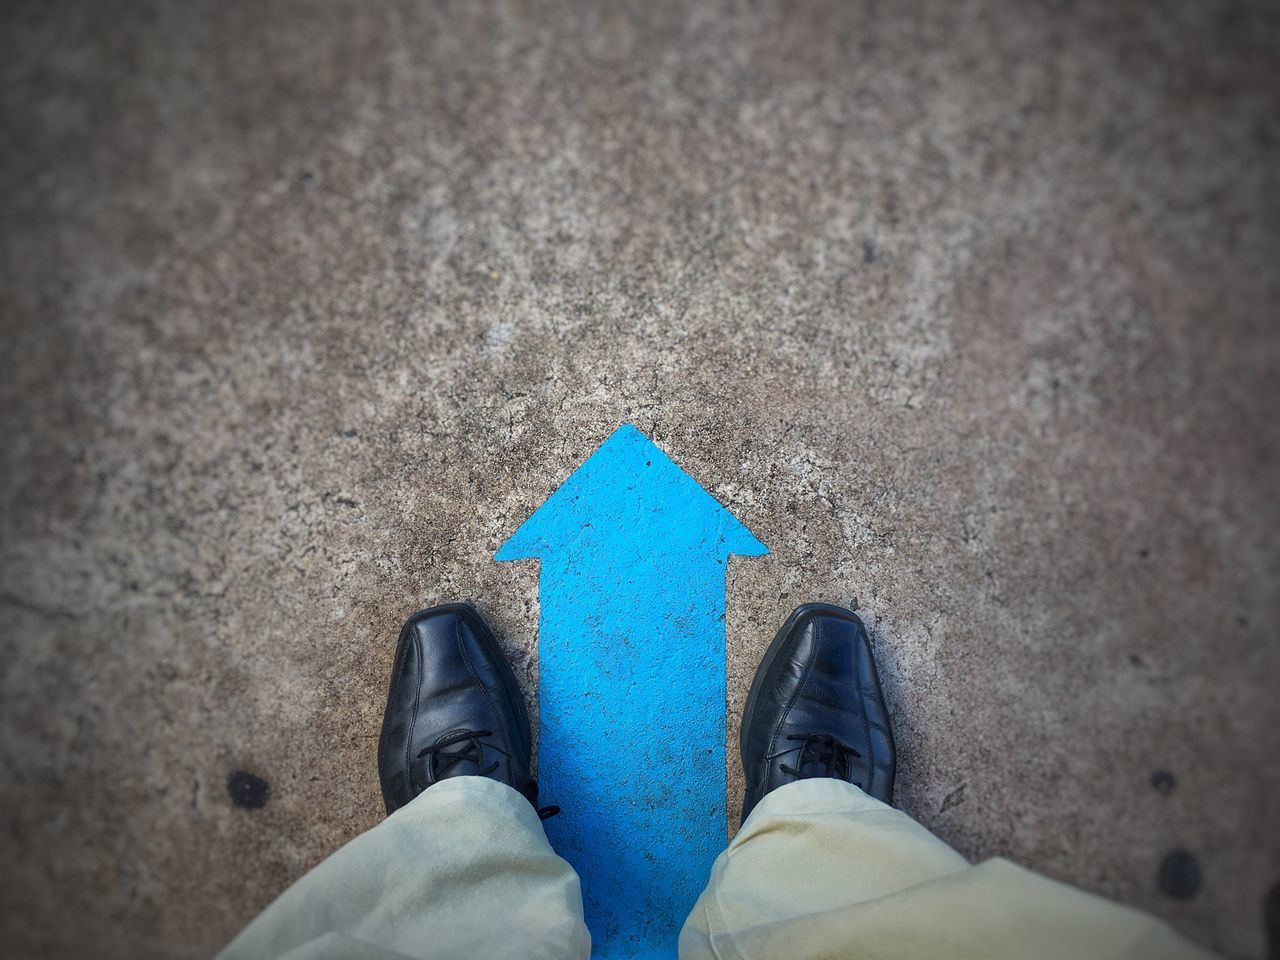 Personal Perspective One Person Standing Real People Shoe Outdoors Going Forward  Direction Arrow Blue Motivation Start Beginning